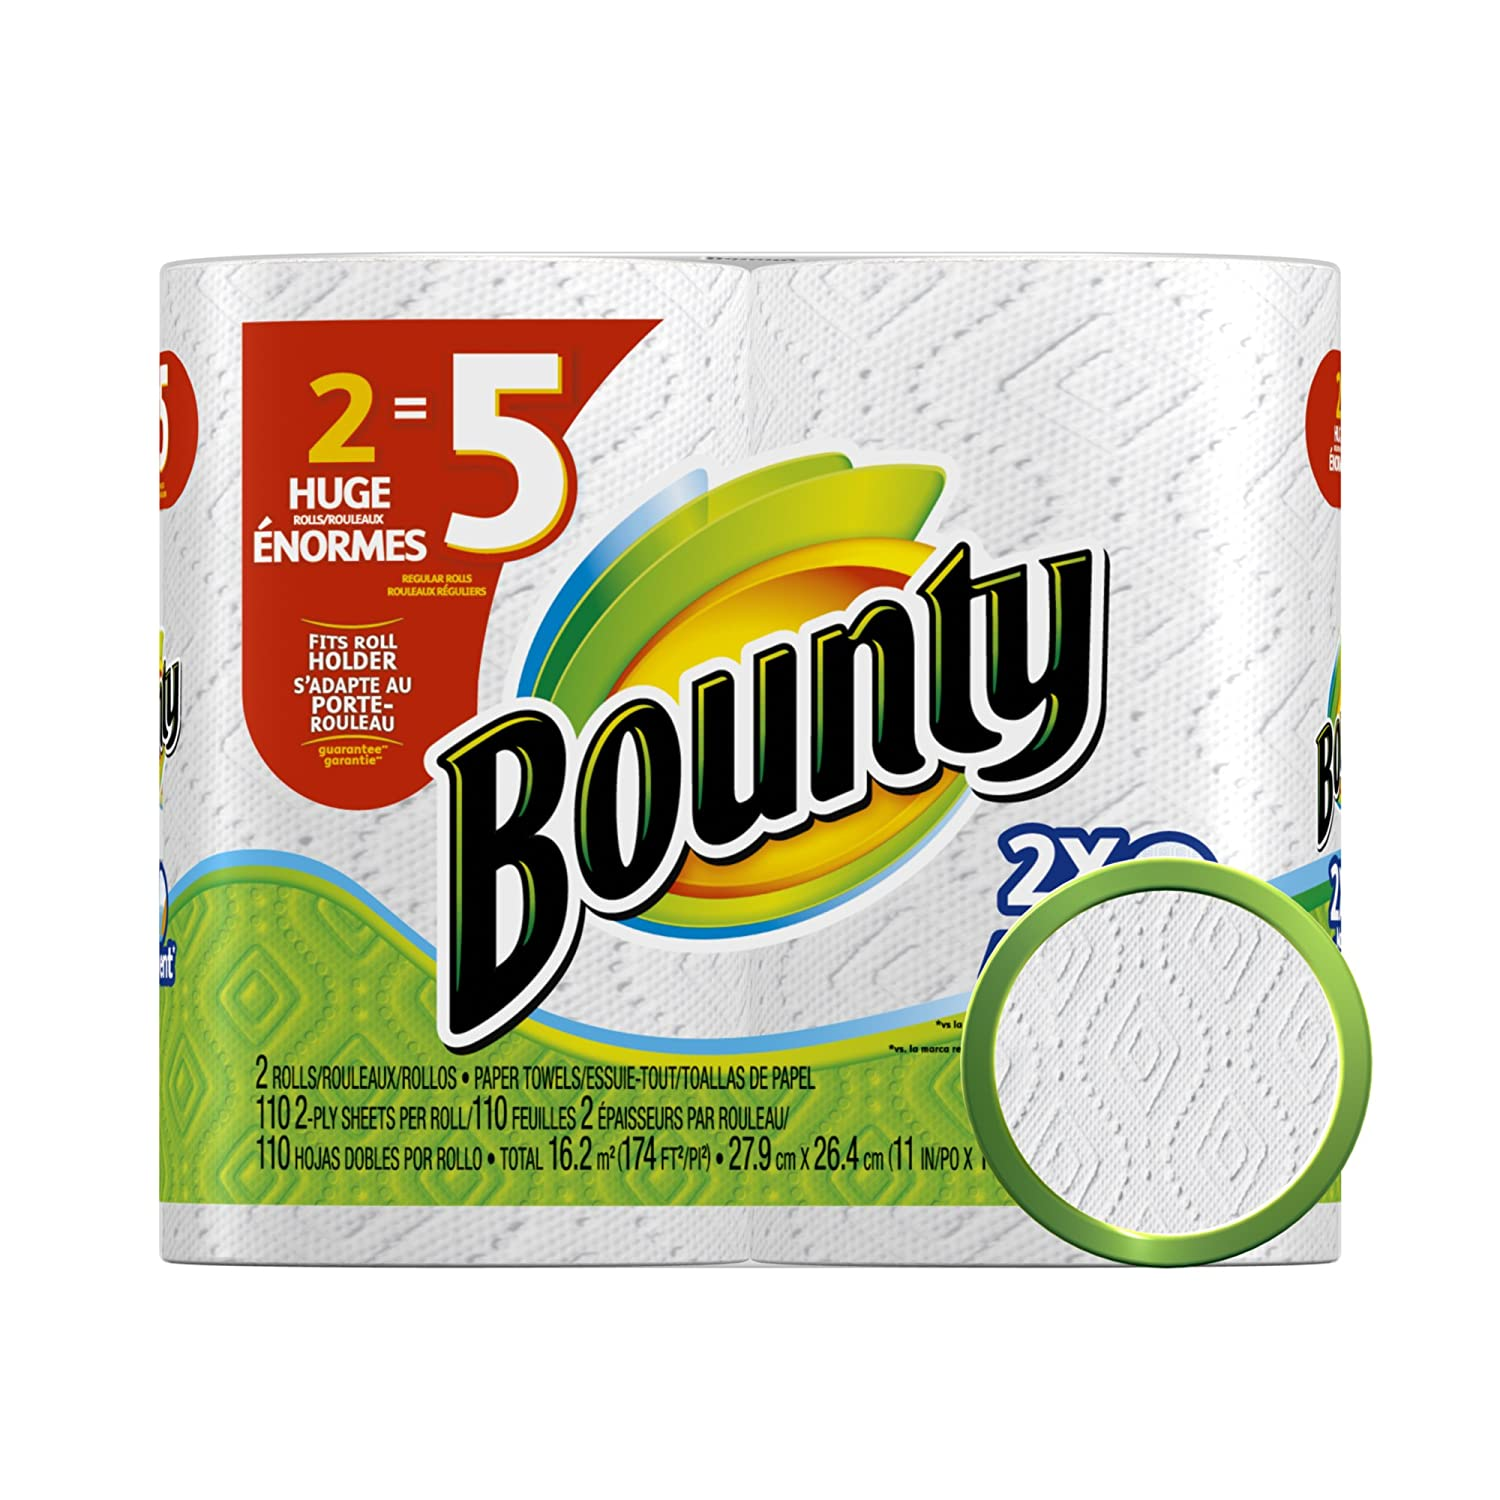 Amazon.com: Bounty Paper Towels, White, 2 Huge Rolls, Pack Of 6 (12 Rolls) (Packaging May Vary): Health & Personal Care